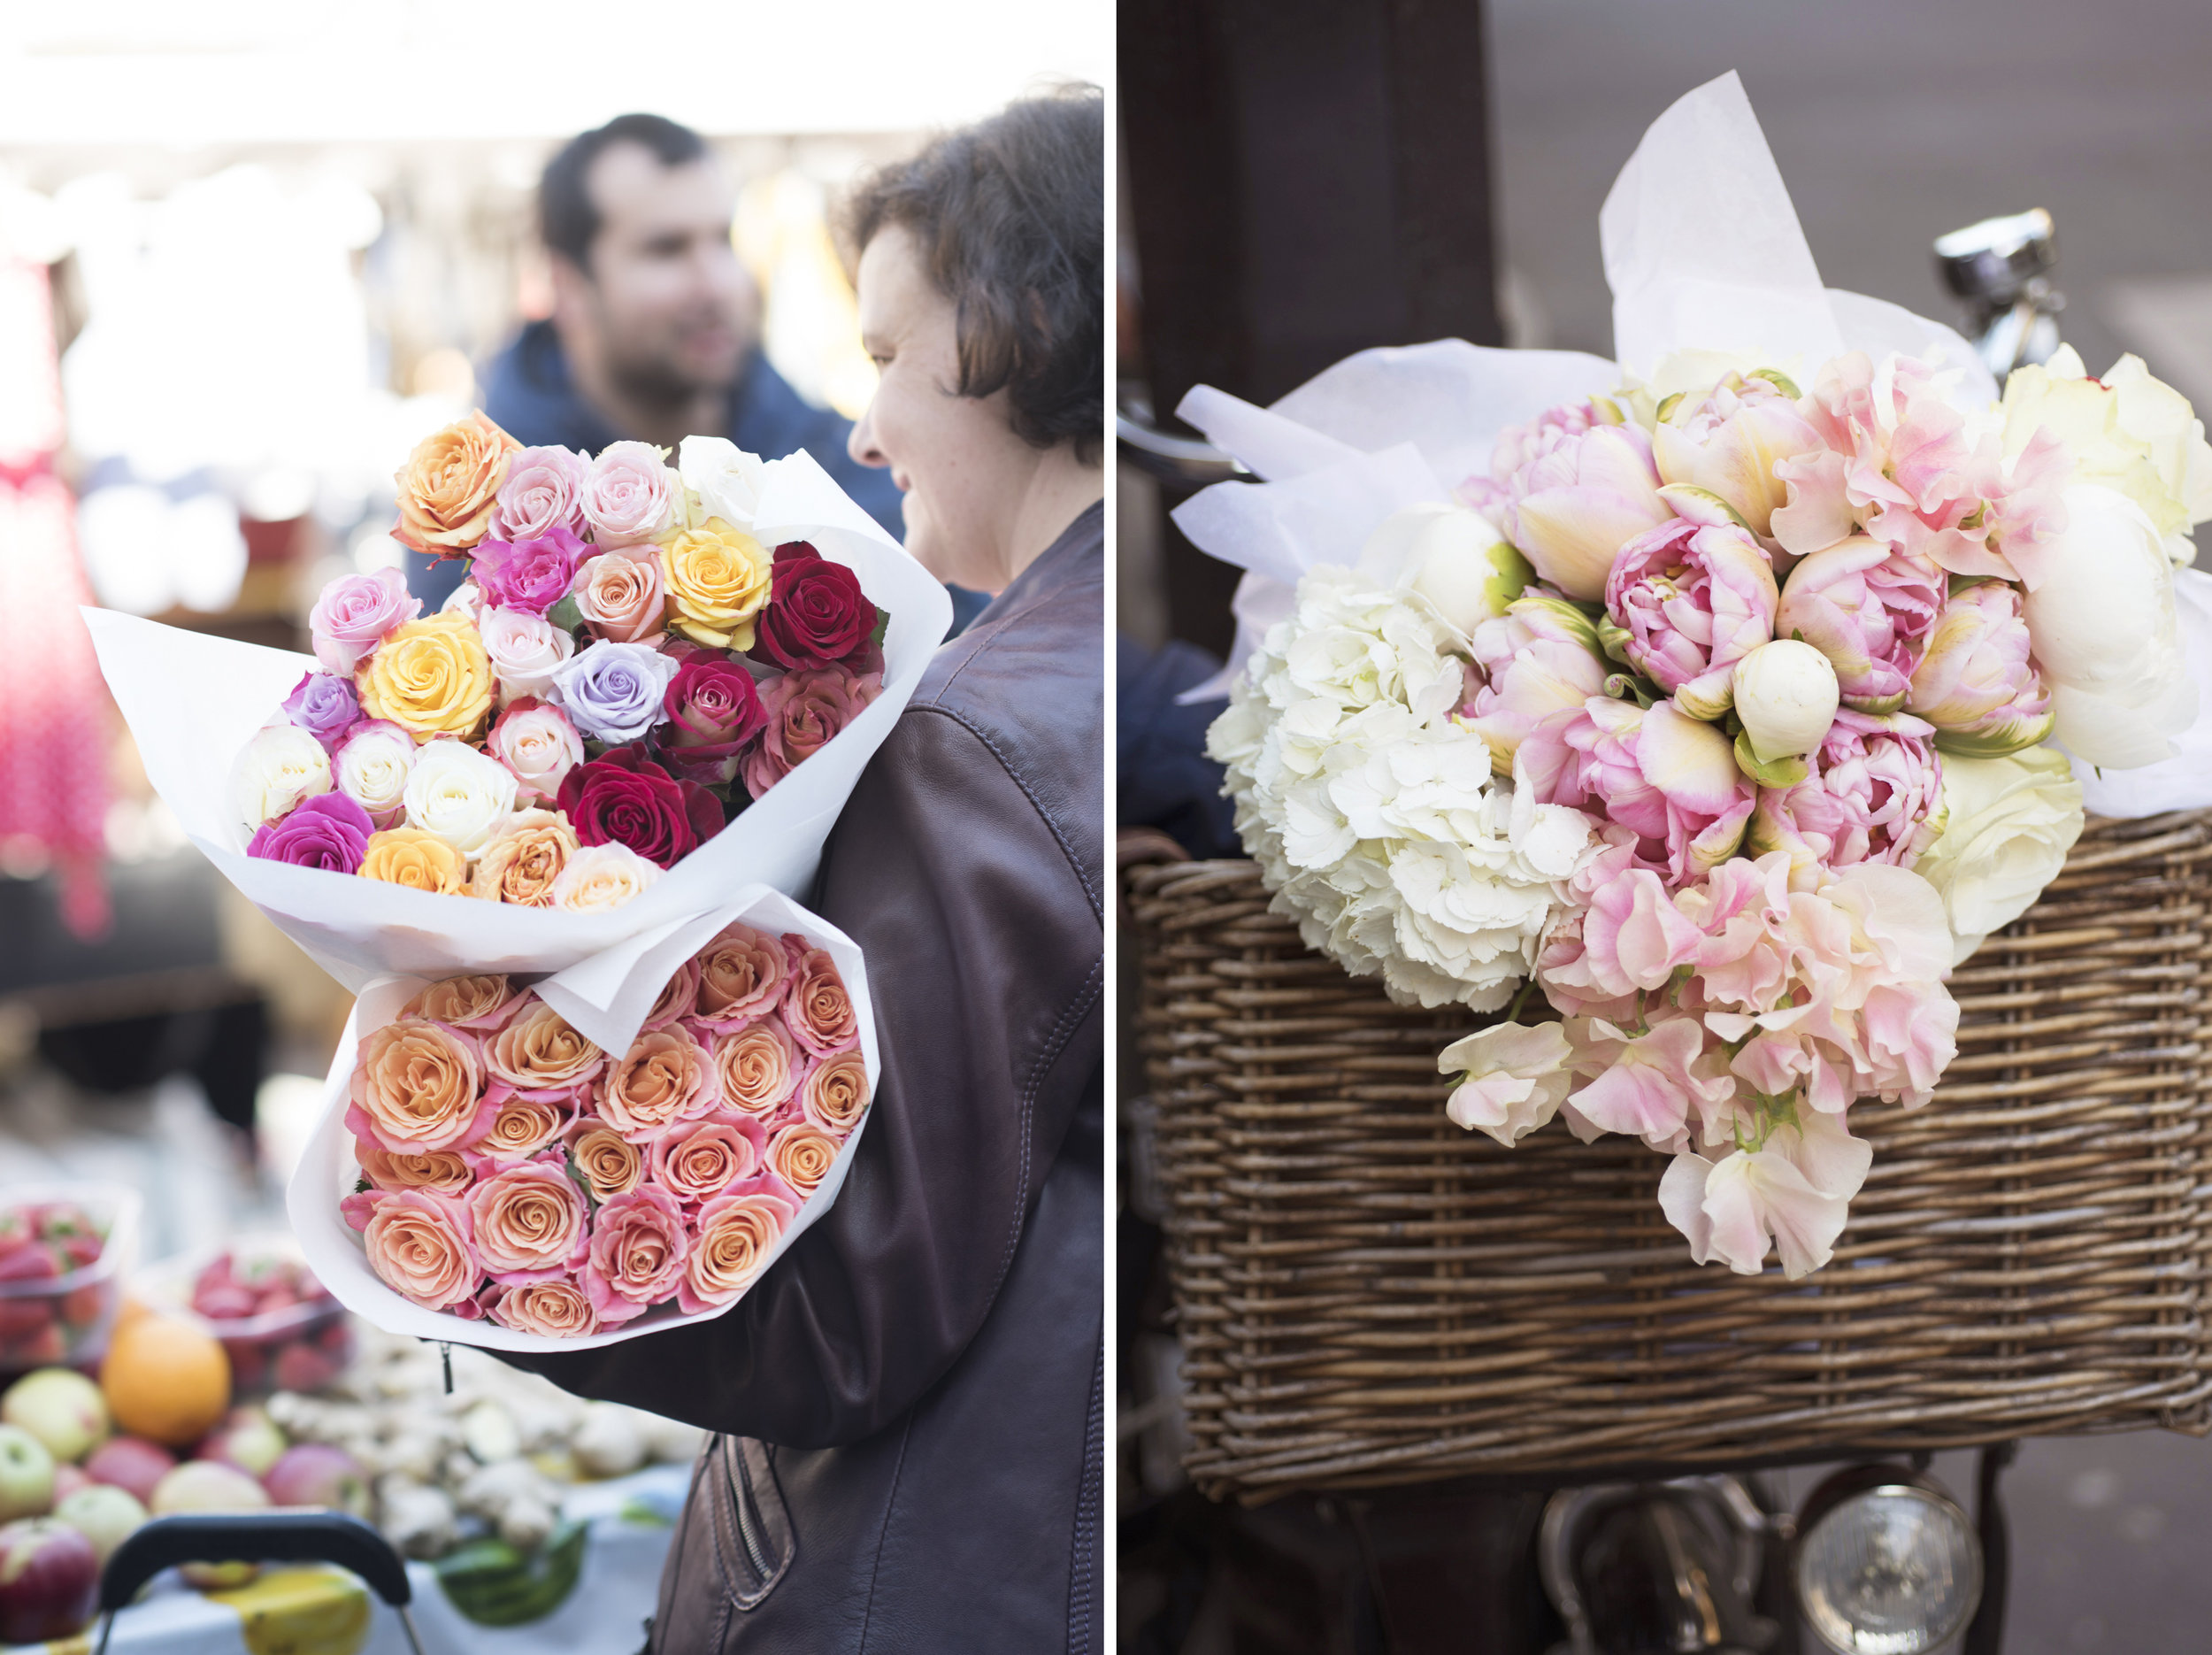 Flower Shops of Paris — Parisian Moments